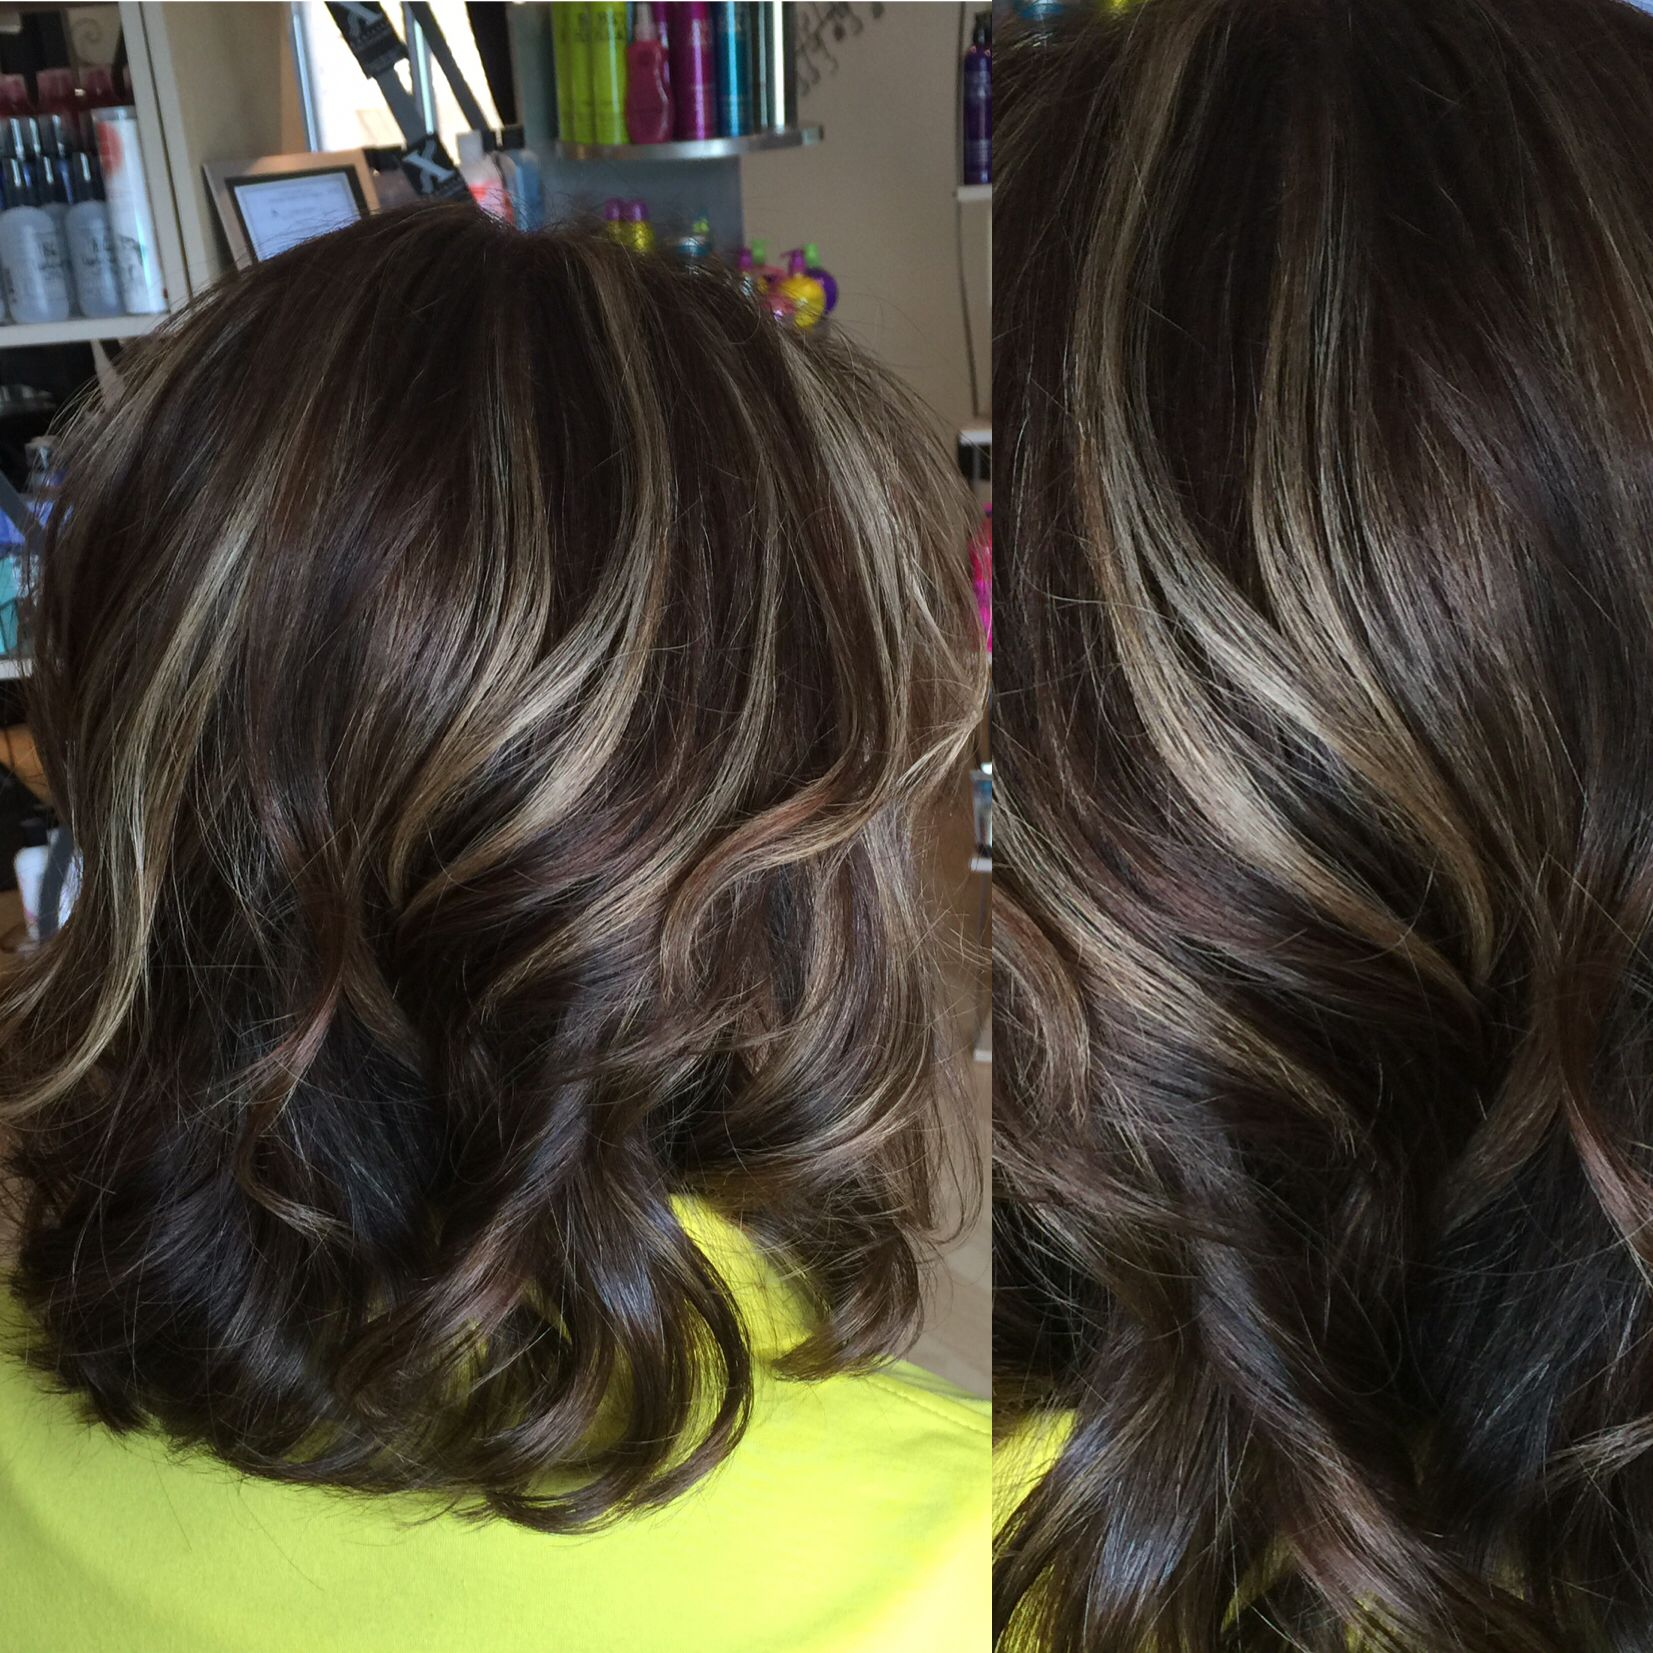 Medium Brown Hair Color With Light Beige Highlights On The Cool Side